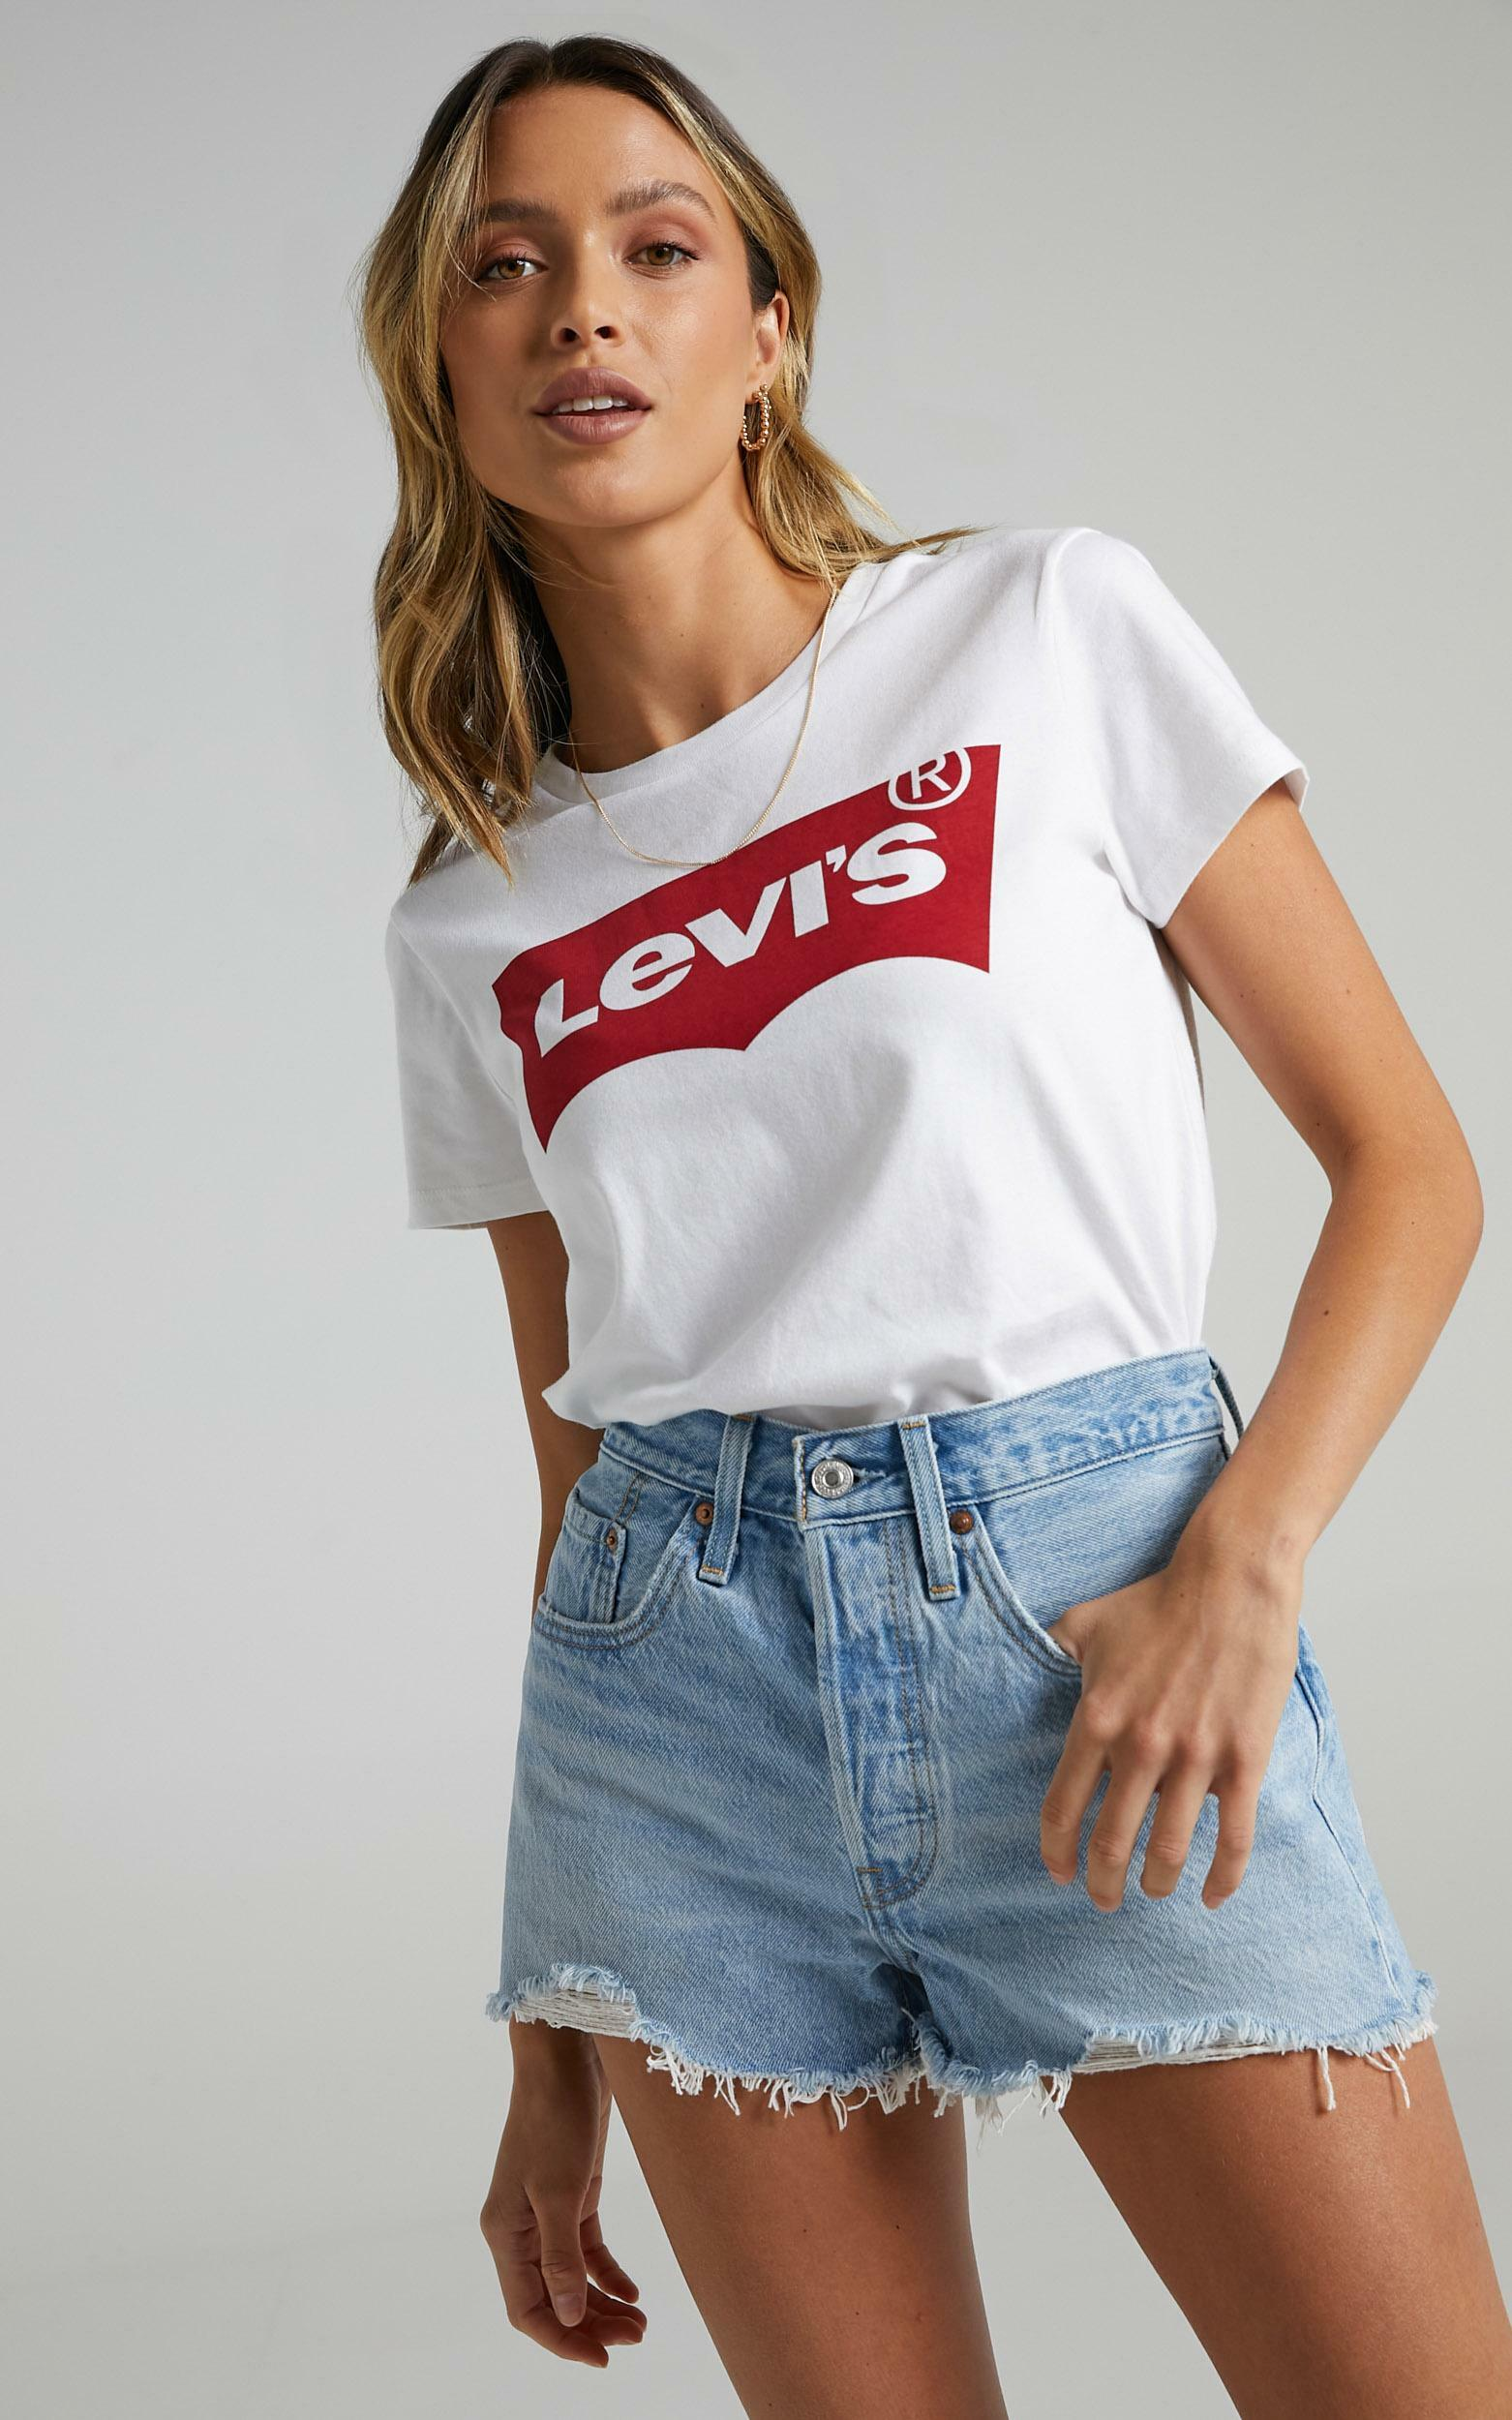 Levis - Perfect Batwing Tee in White - XS, WHT1, hi-res image number null